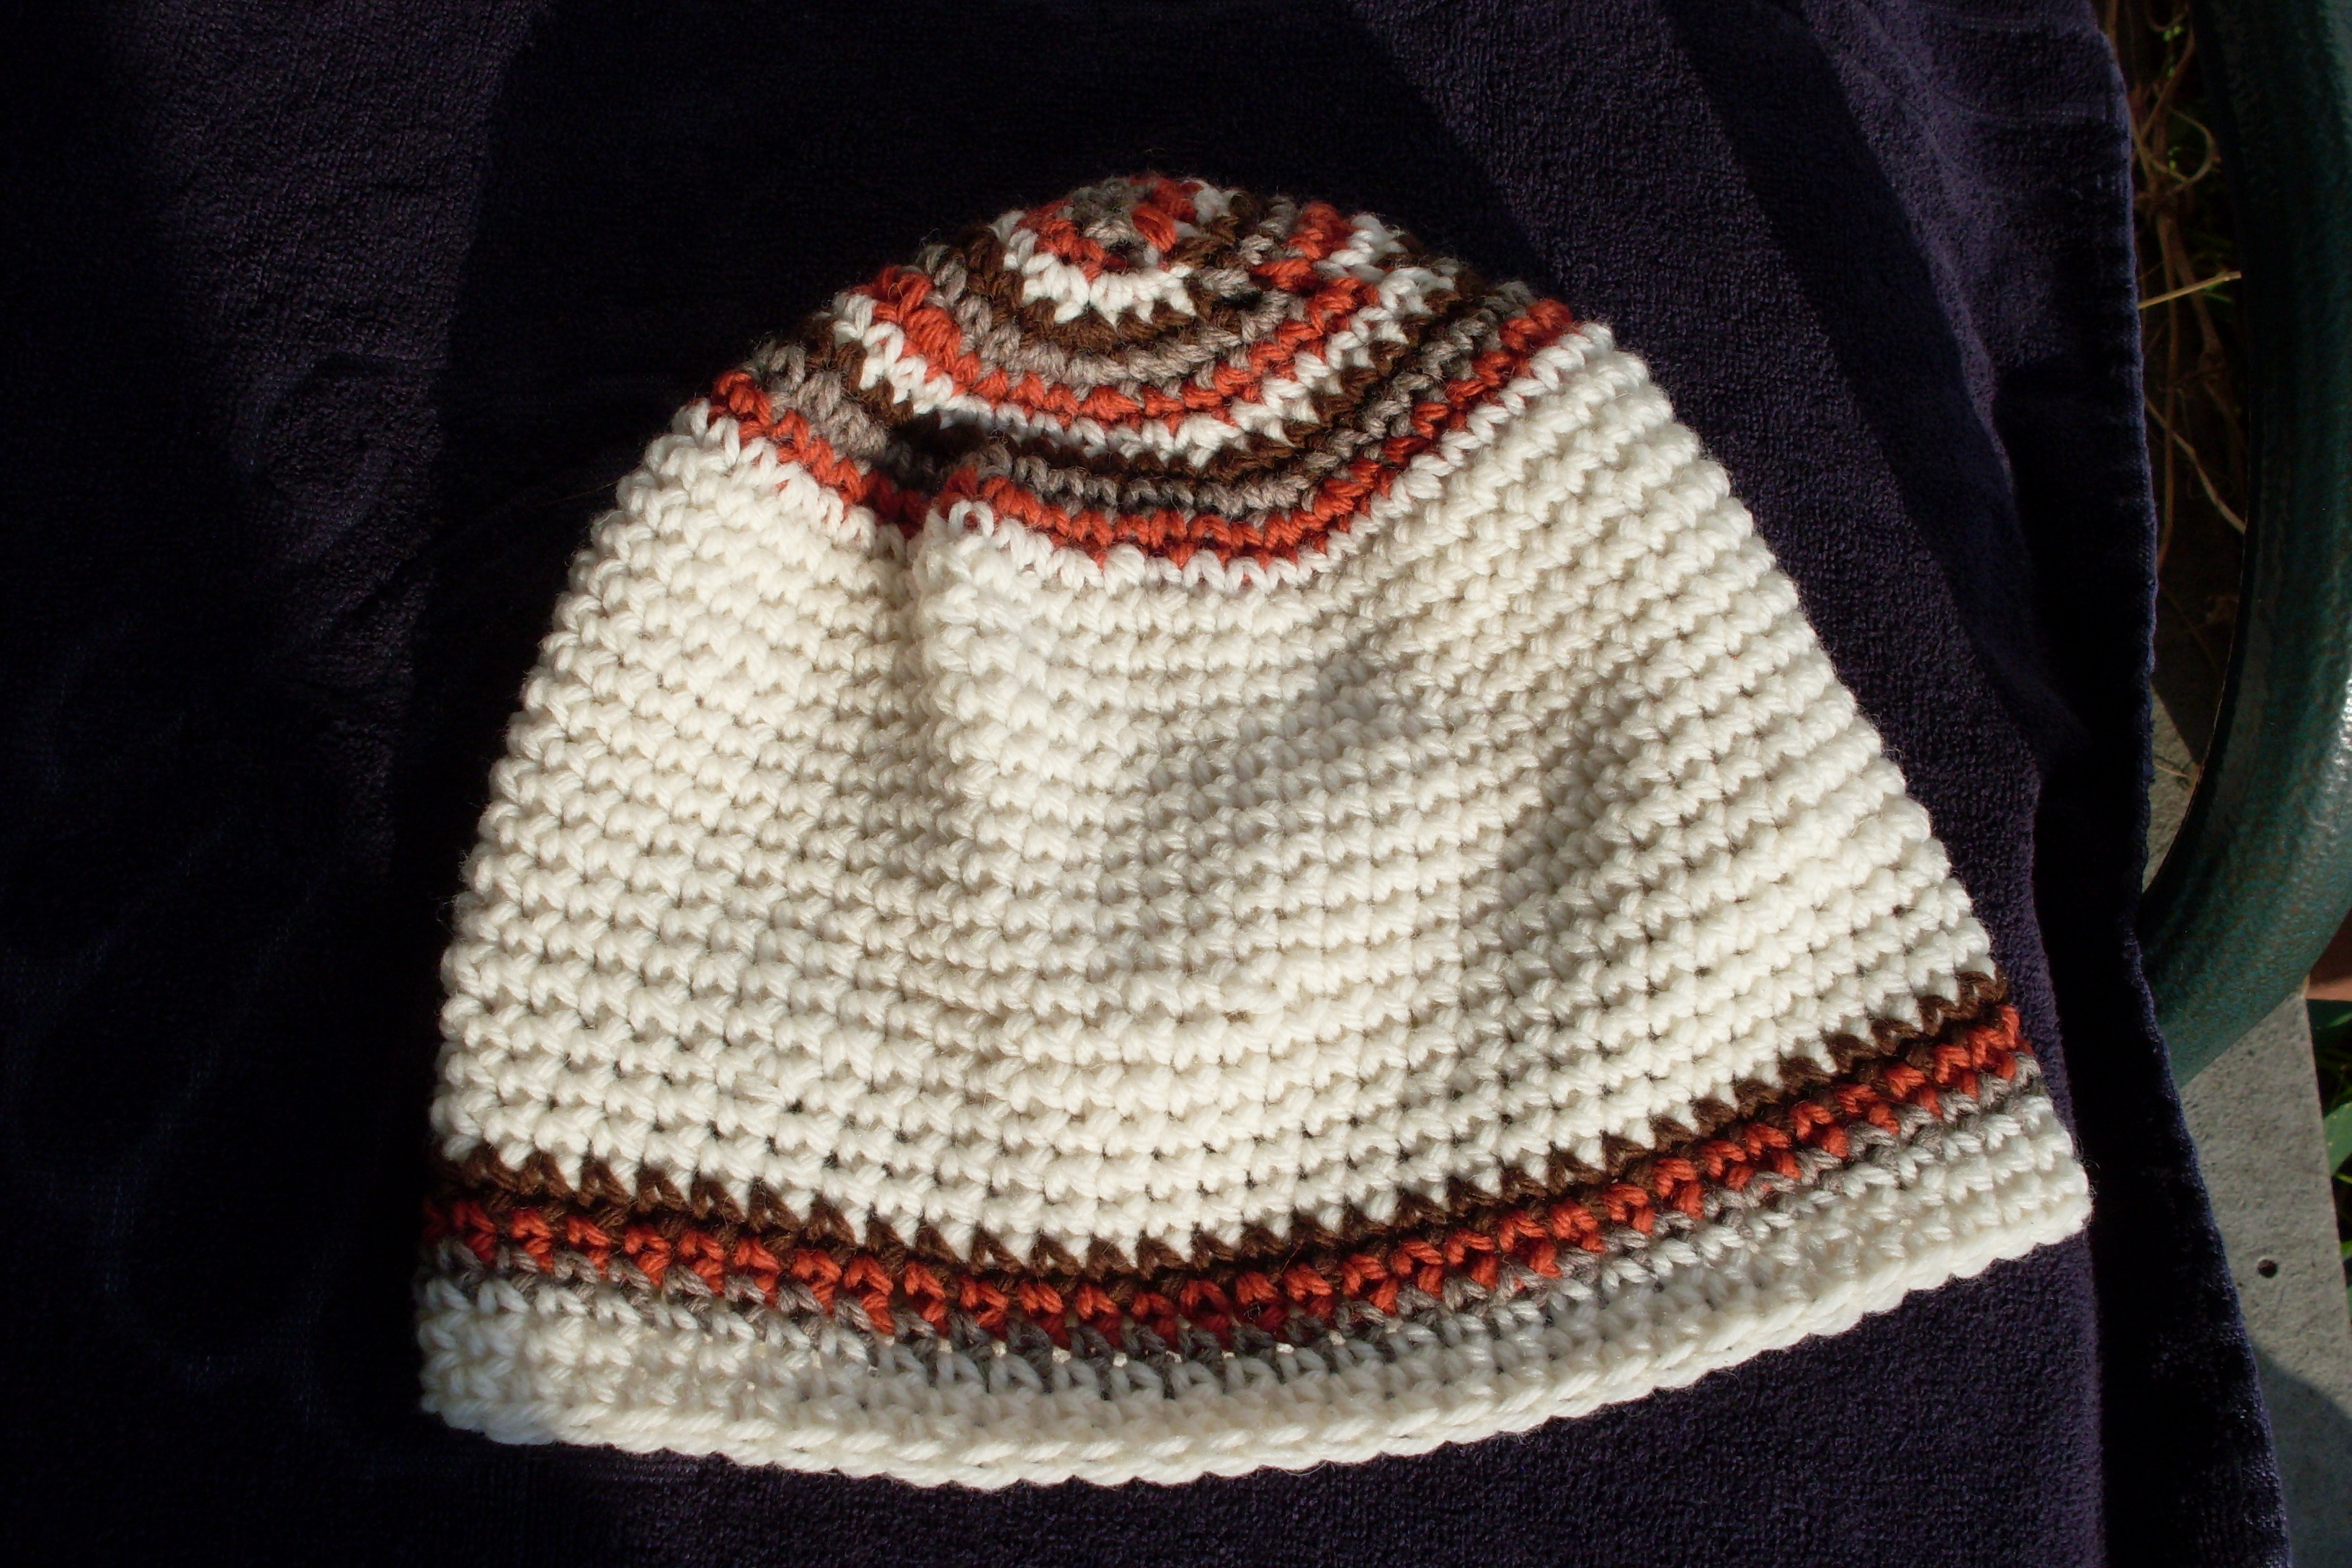 970e42ea2af http   www.ravelry.com patterns library simple-single-crochet-hat